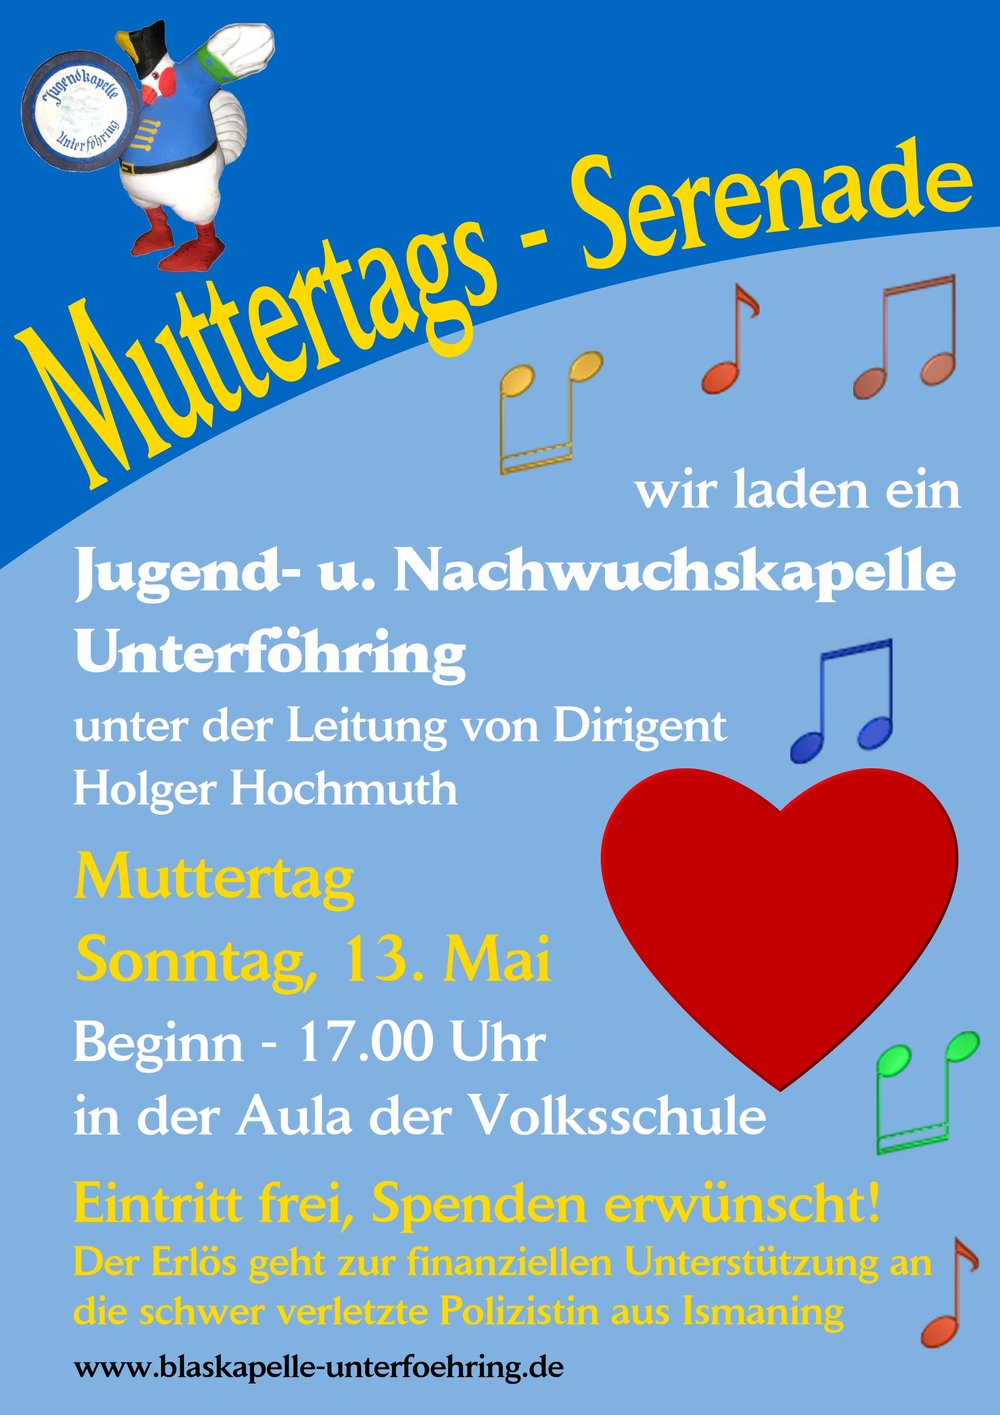 Plakat Muttertags-Sserenade 2018.jpg